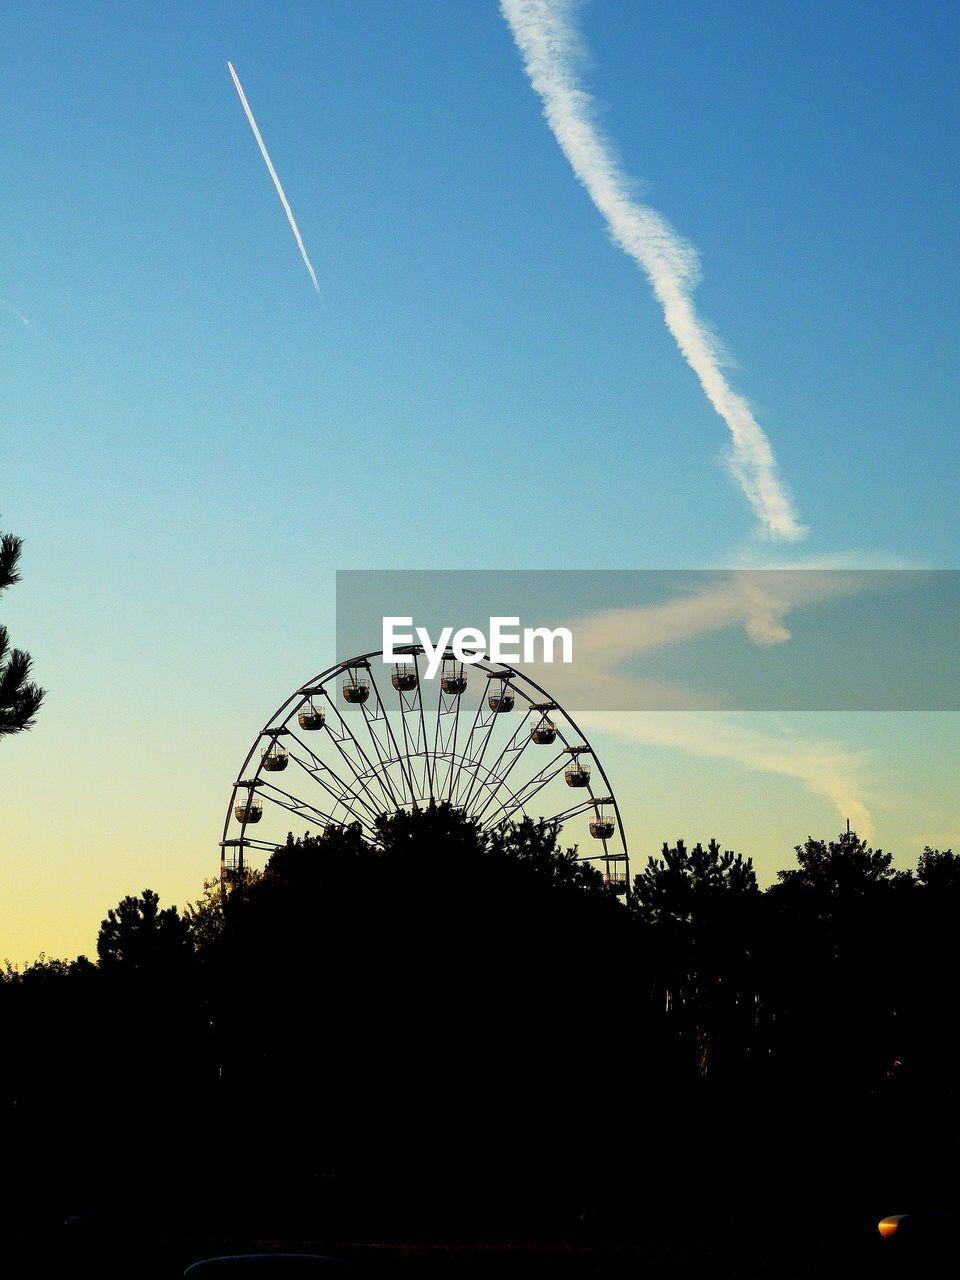 sky, tree, vapor trail, cloud - sky, nature, plant, silhouette, no people, arts culture and entertainment, amusement park, outdoors, ferris wheel, blue, amusement park ride, architecture, sunset, built structure, shape, park, environment